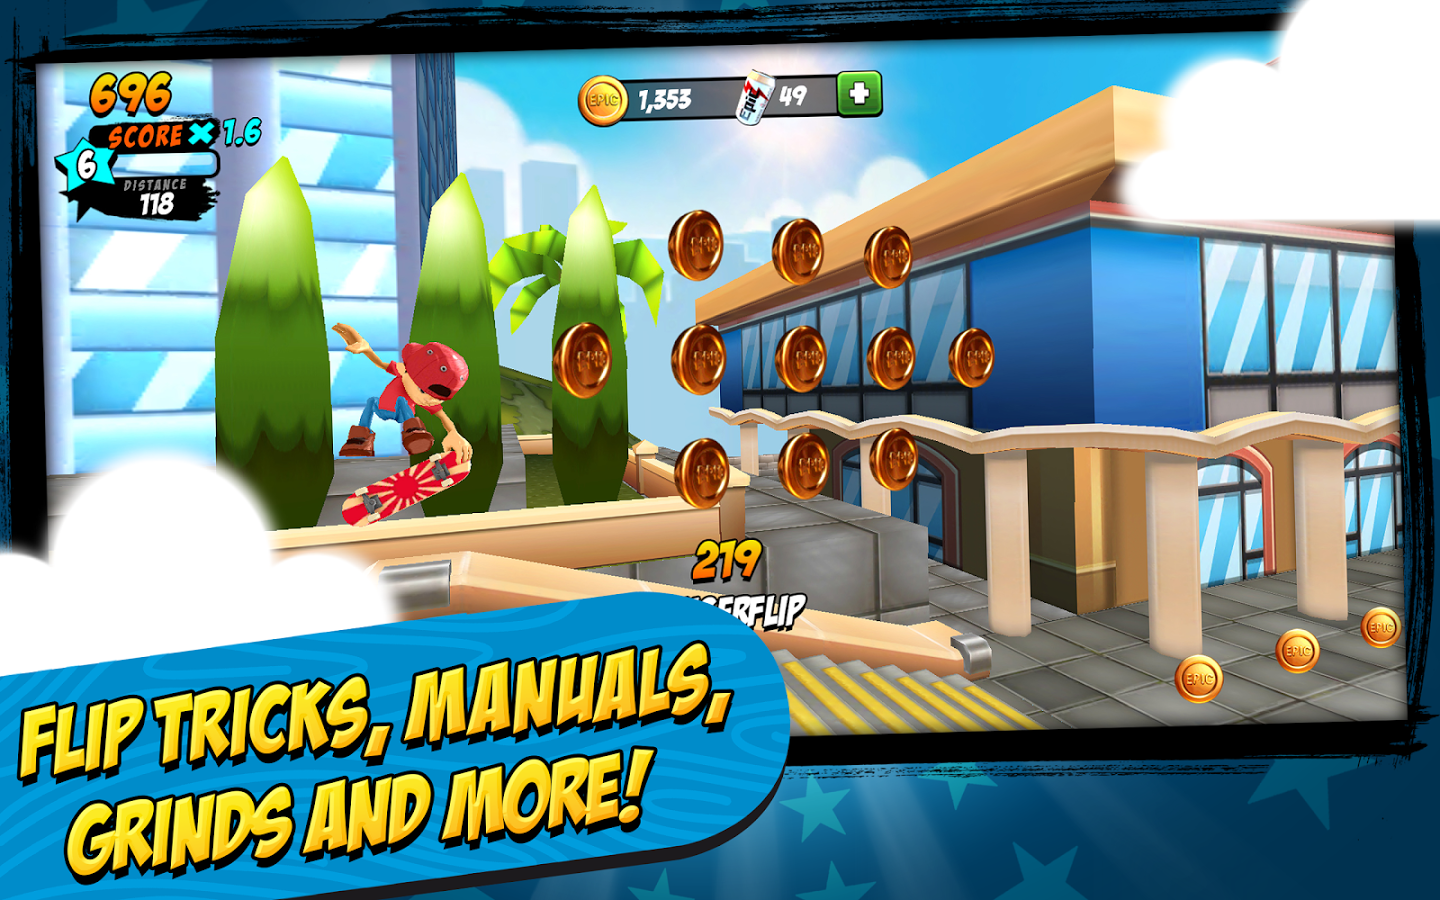 Download%2BGame%2BEpic%2BSkater%2BFor%2B